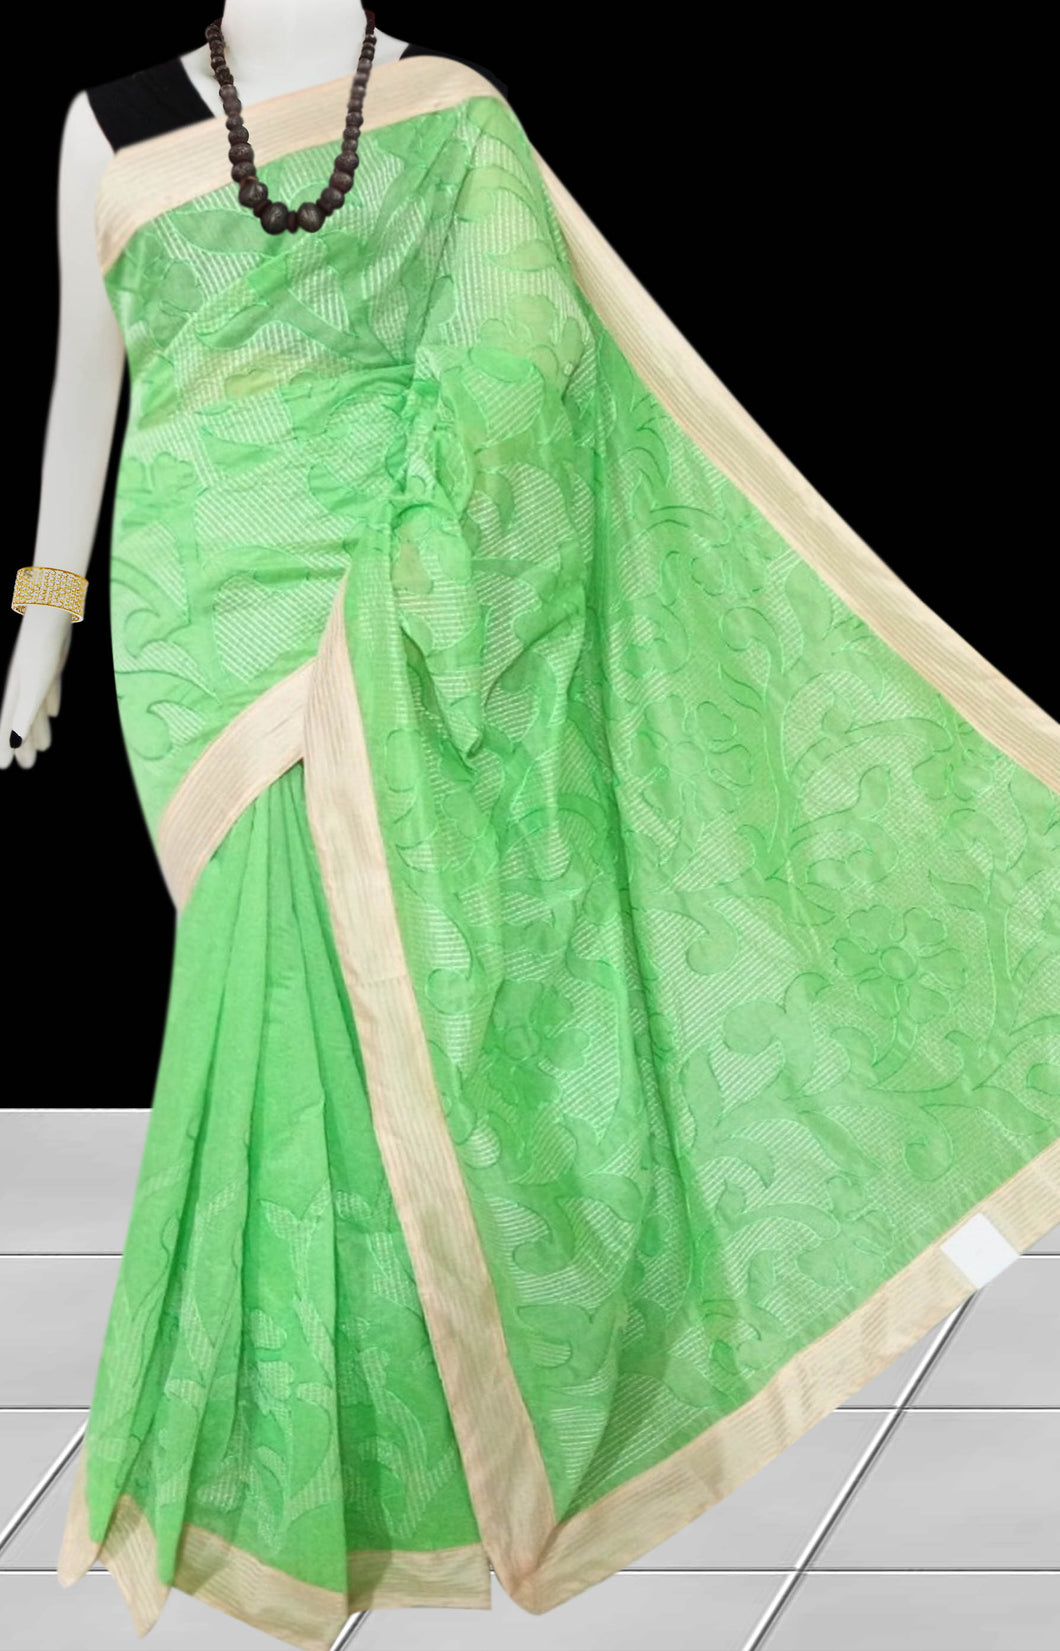 Beige & light green Color Kantha stitch design on Chanderi silk Saree